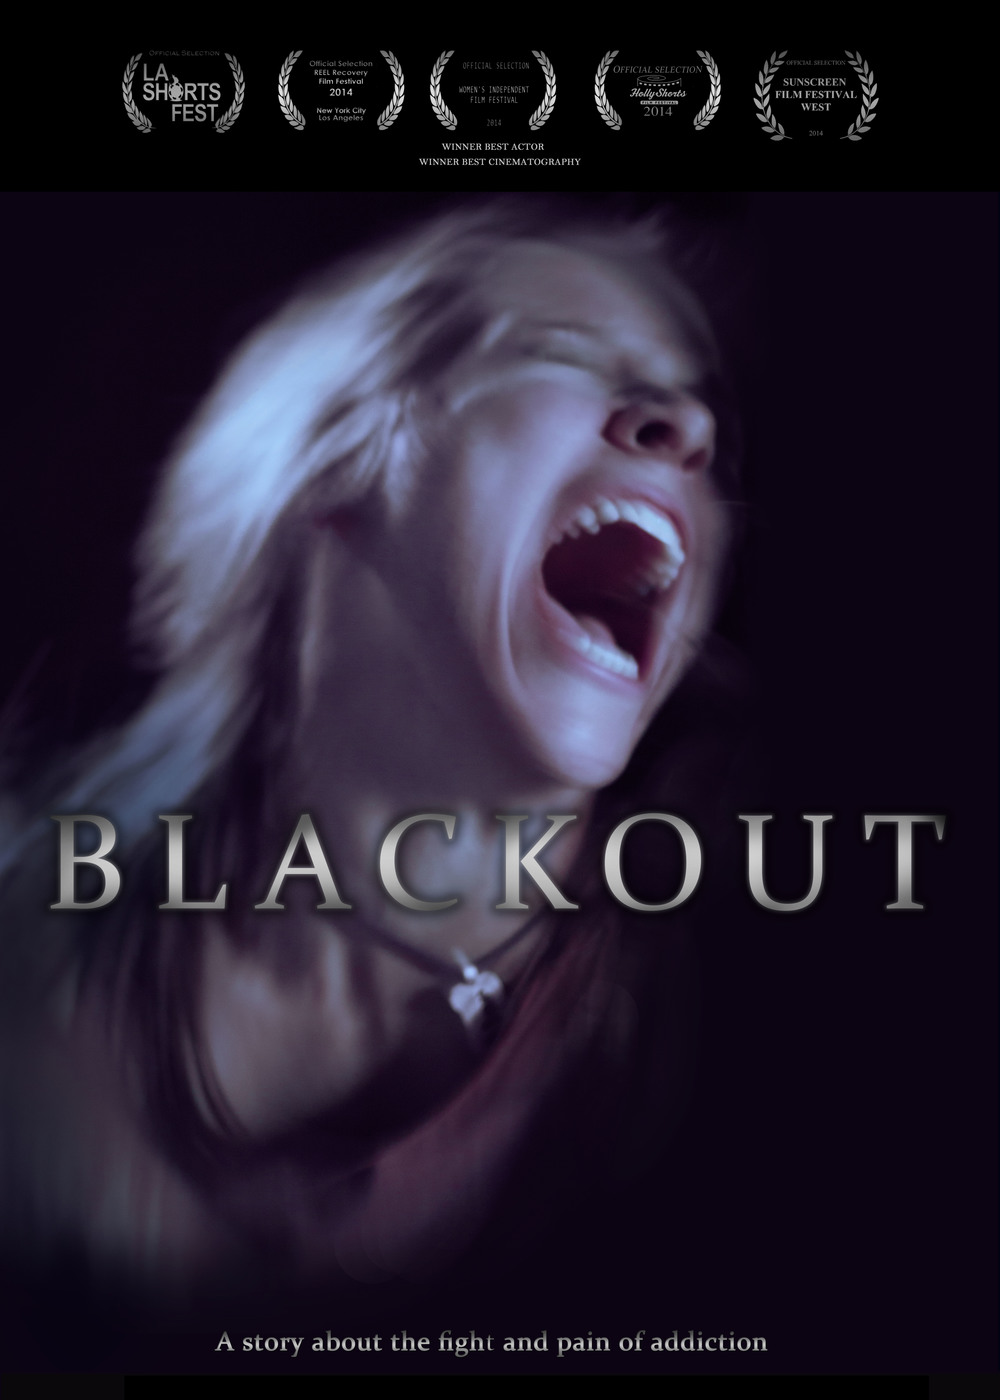 Blackoutposter_copyright2014.jpg